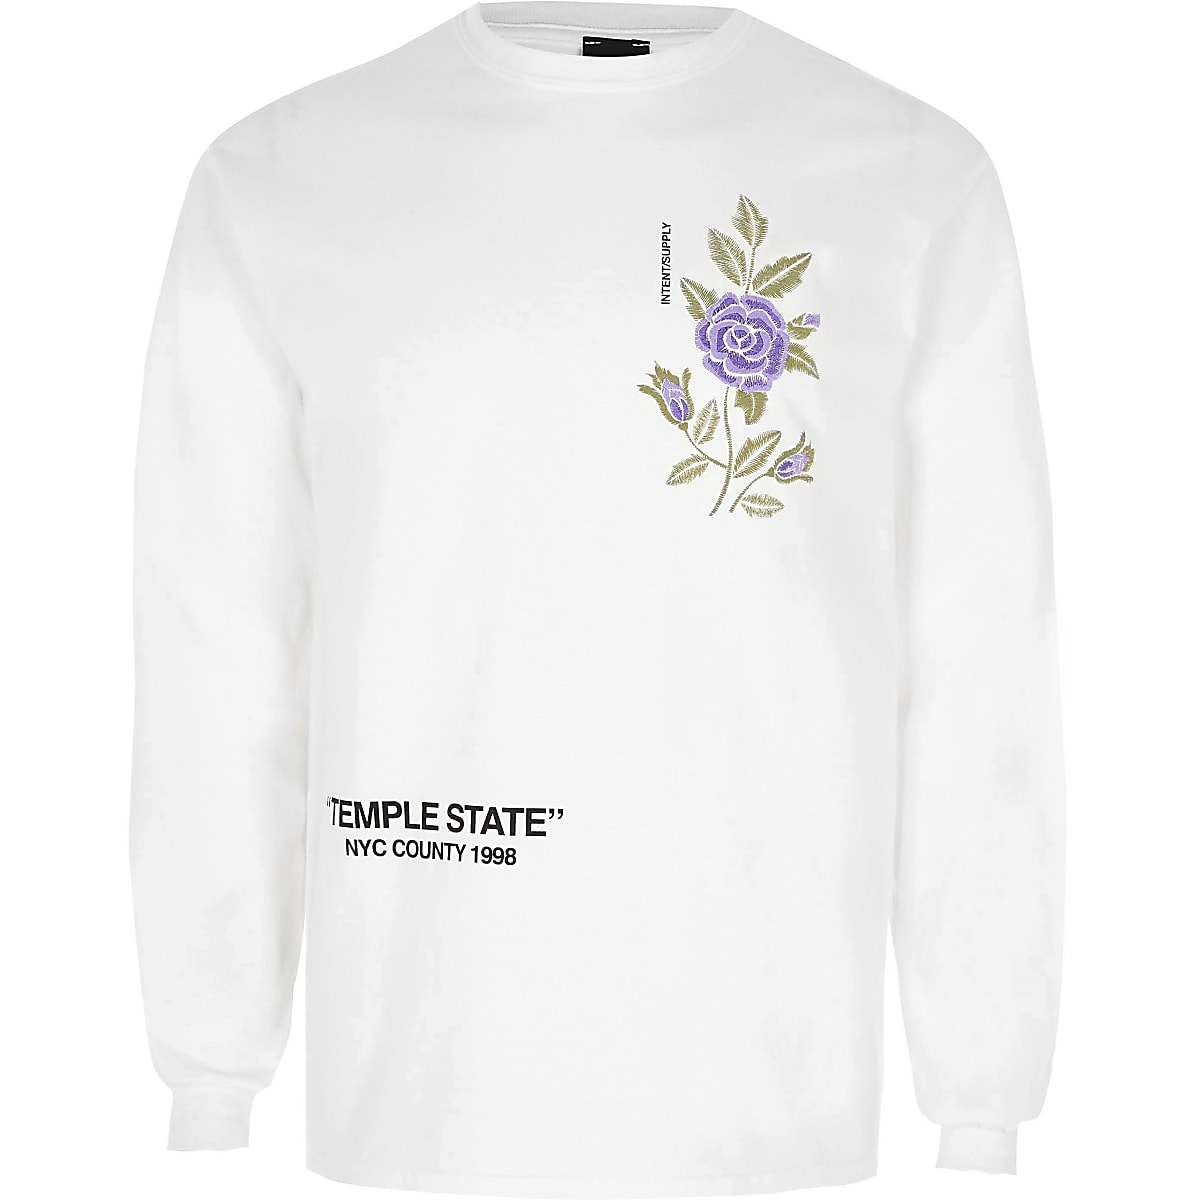 824d416c White floral embroidery print long sleeve top - Long Sleeve T-Shirts - T- Shirts & Vests - men